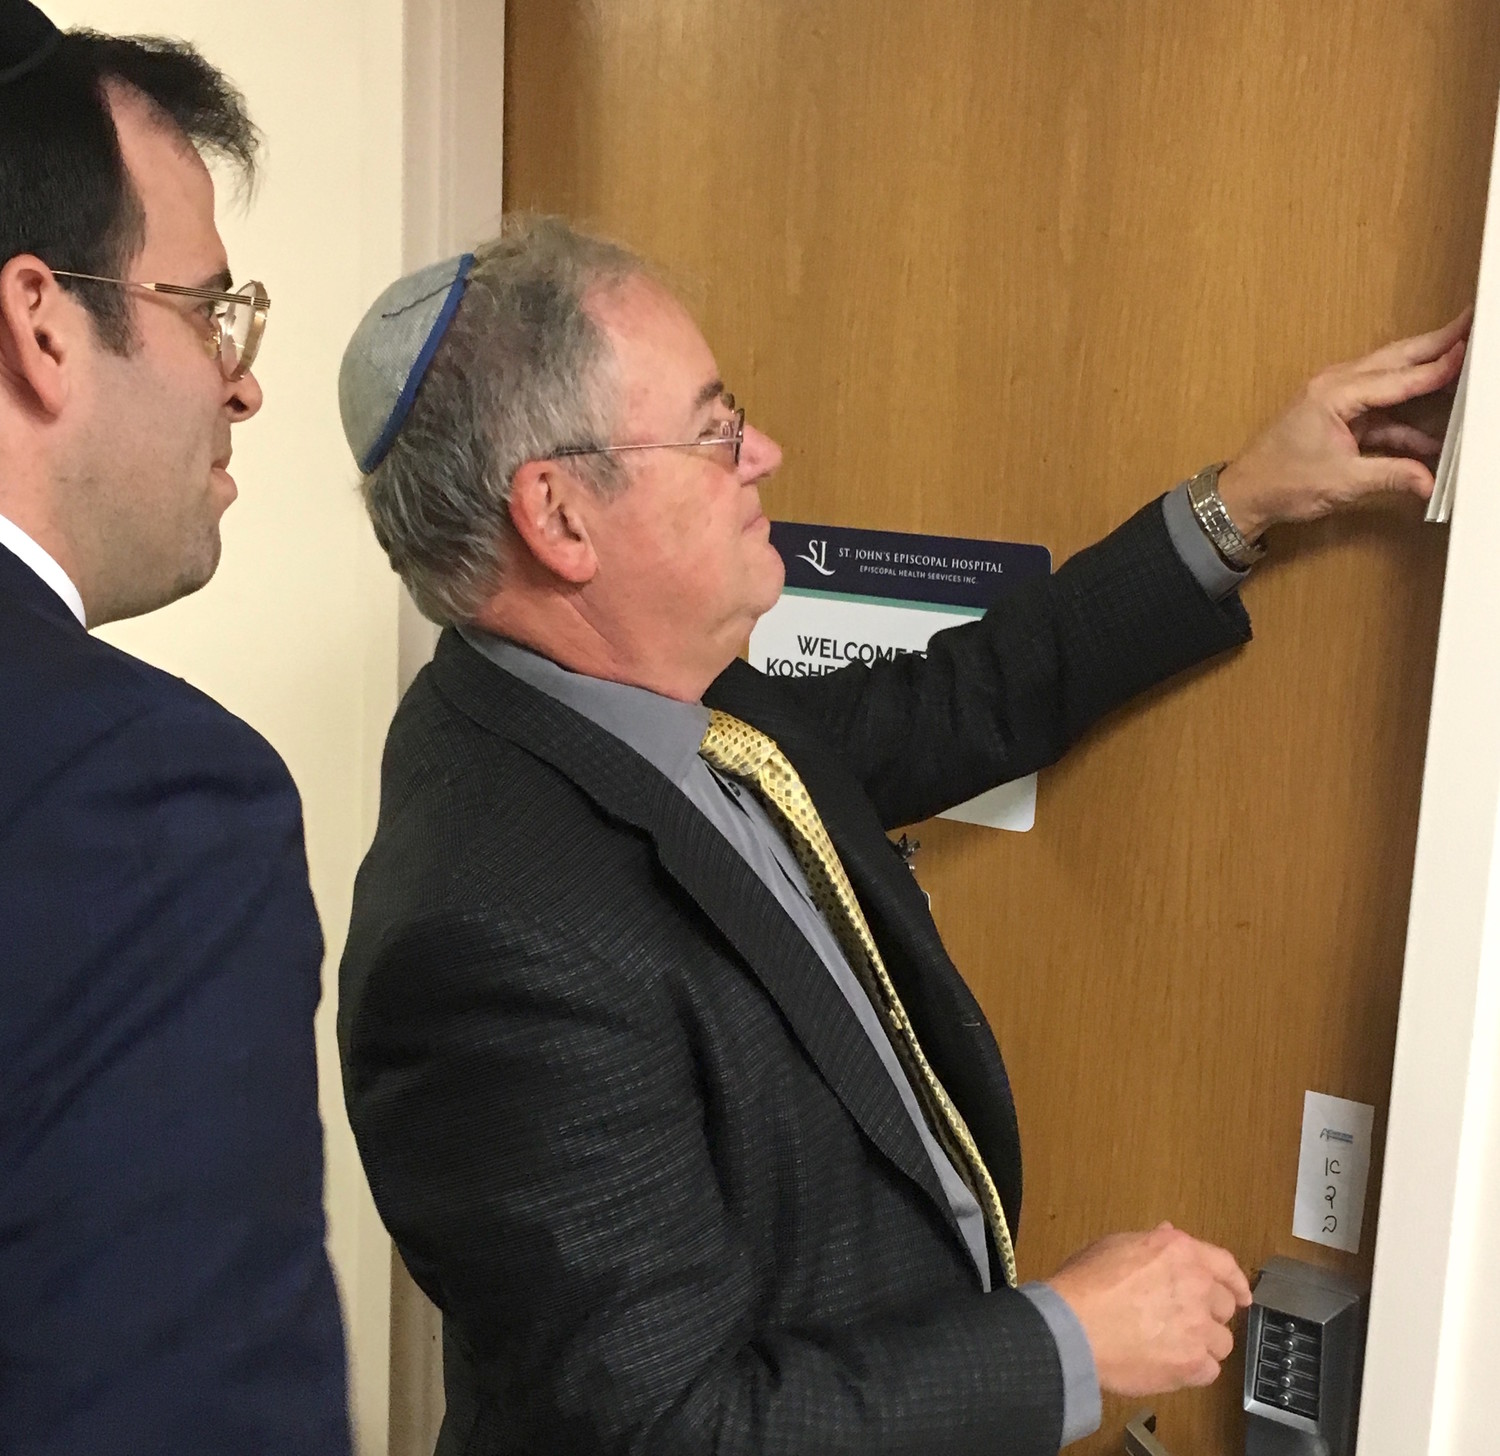 Dr. Nathan Rothman, flanked by Rabbi Boruch Ber Bender of Achiezer, hung the mezuzah.